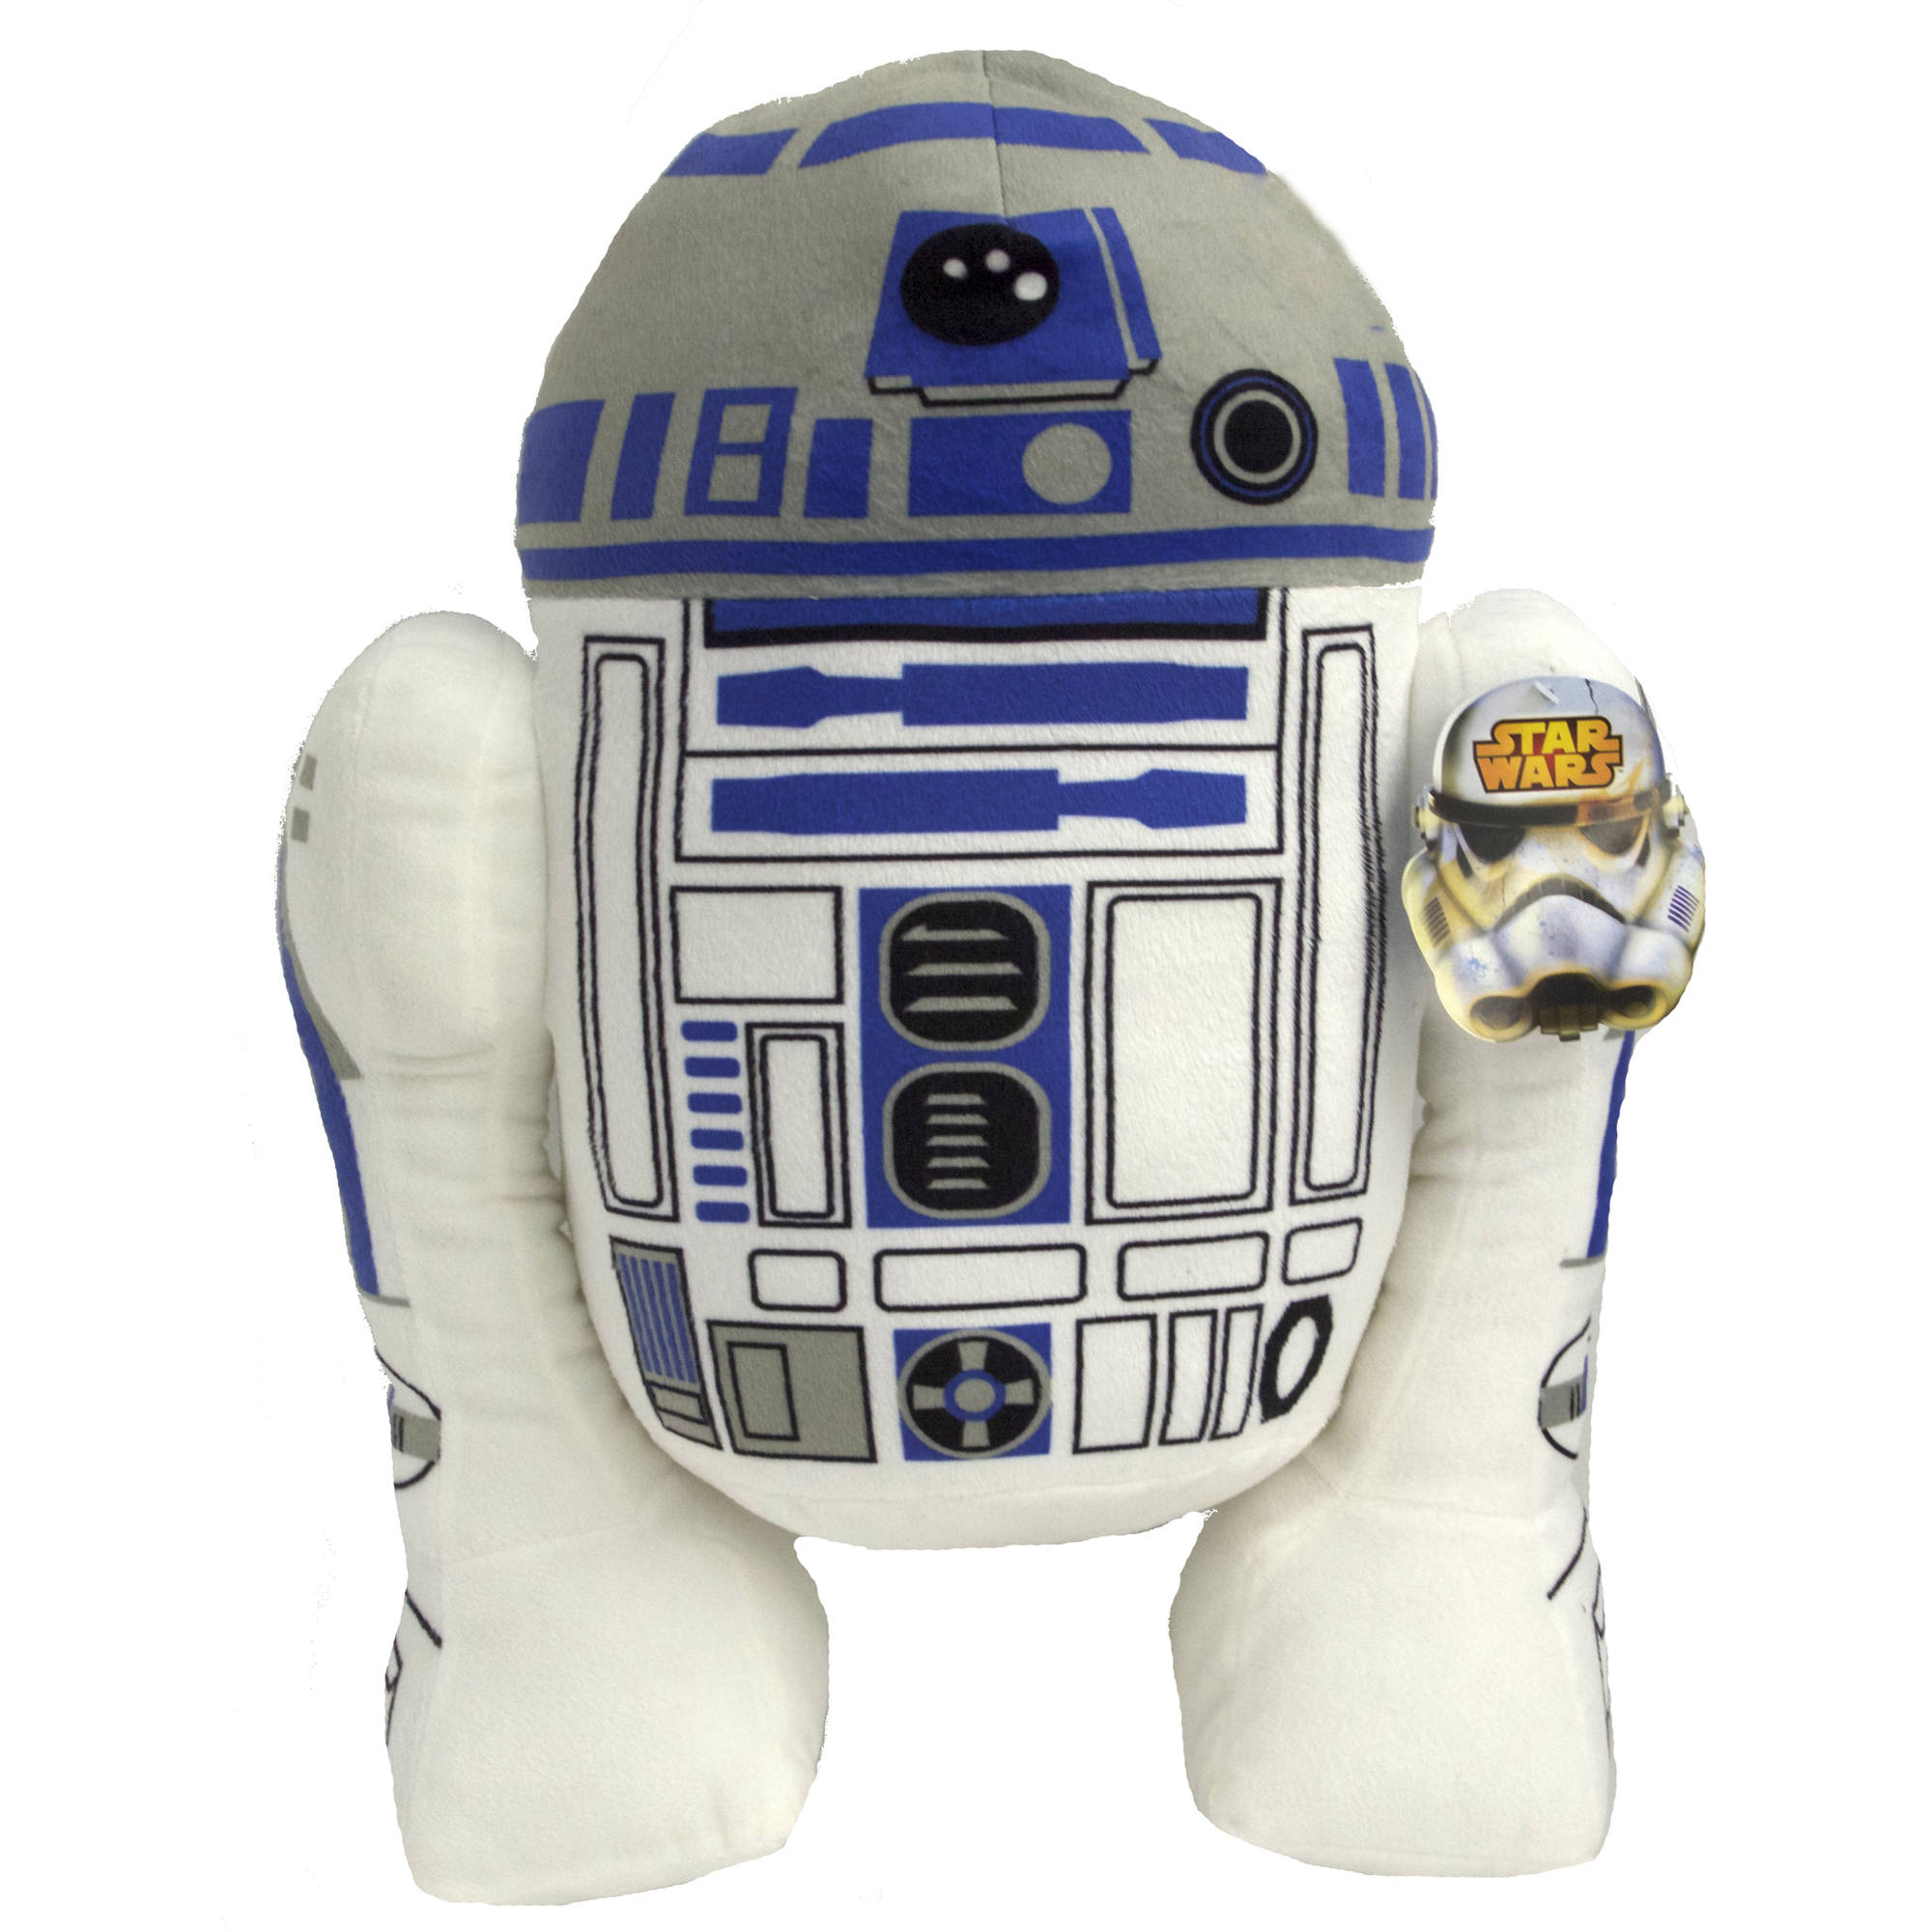 Star Wars R2D2 Pillow Buddy